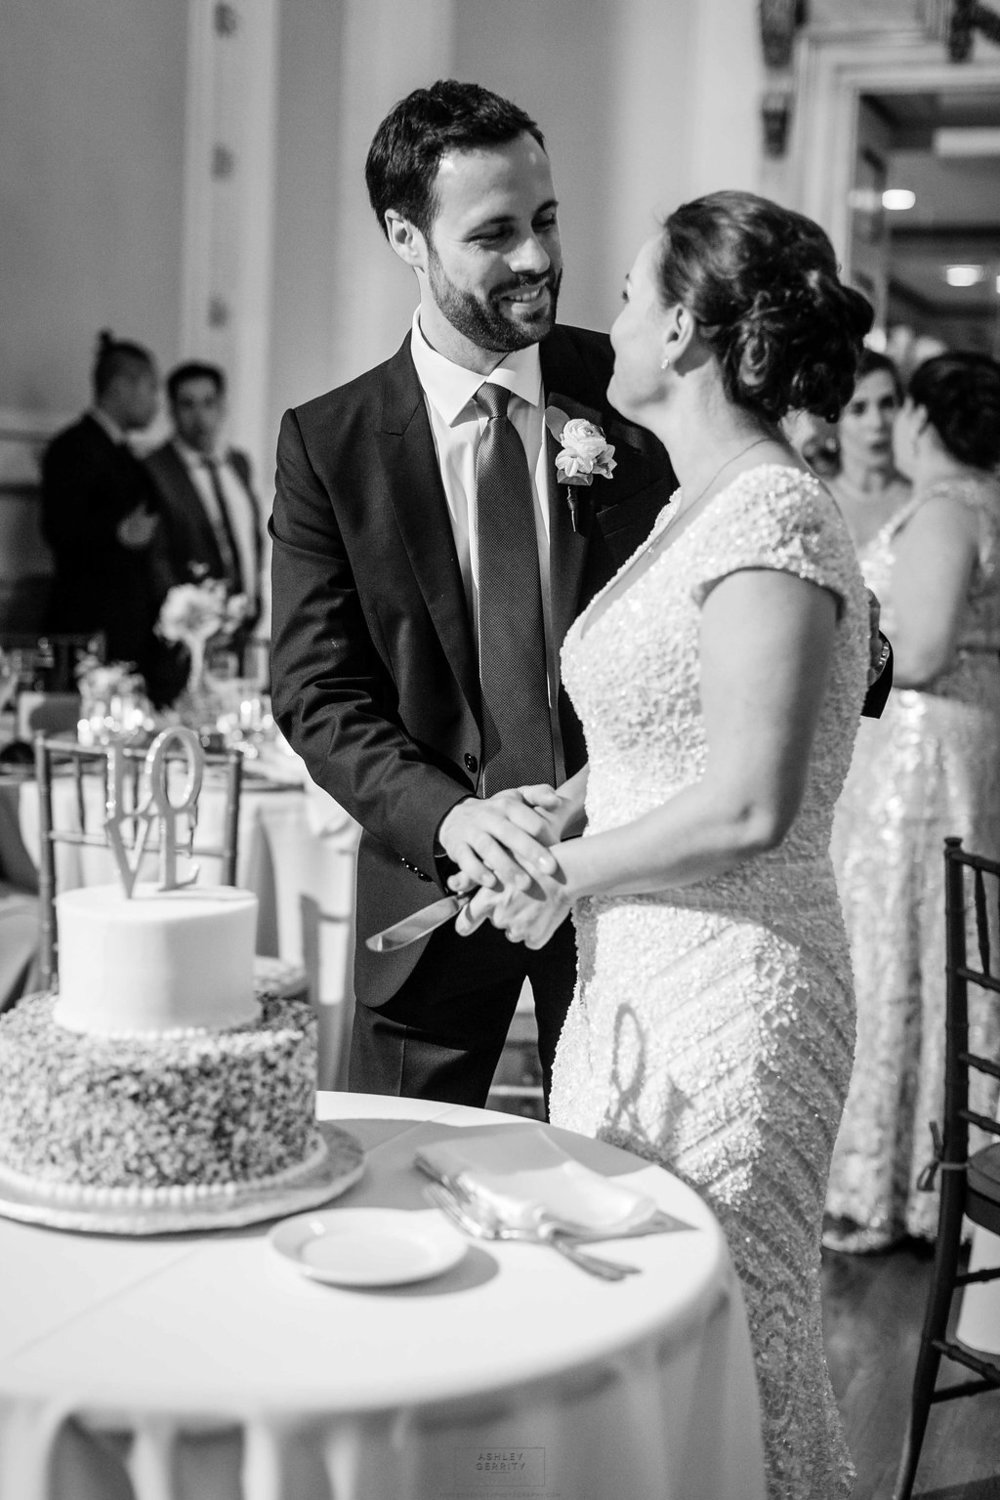 31 Philadelphia Wedding Stotesbury Mansion Cutting the Cake Sprinkles Wedding Cake Jimmies Wedding Cake.jpg